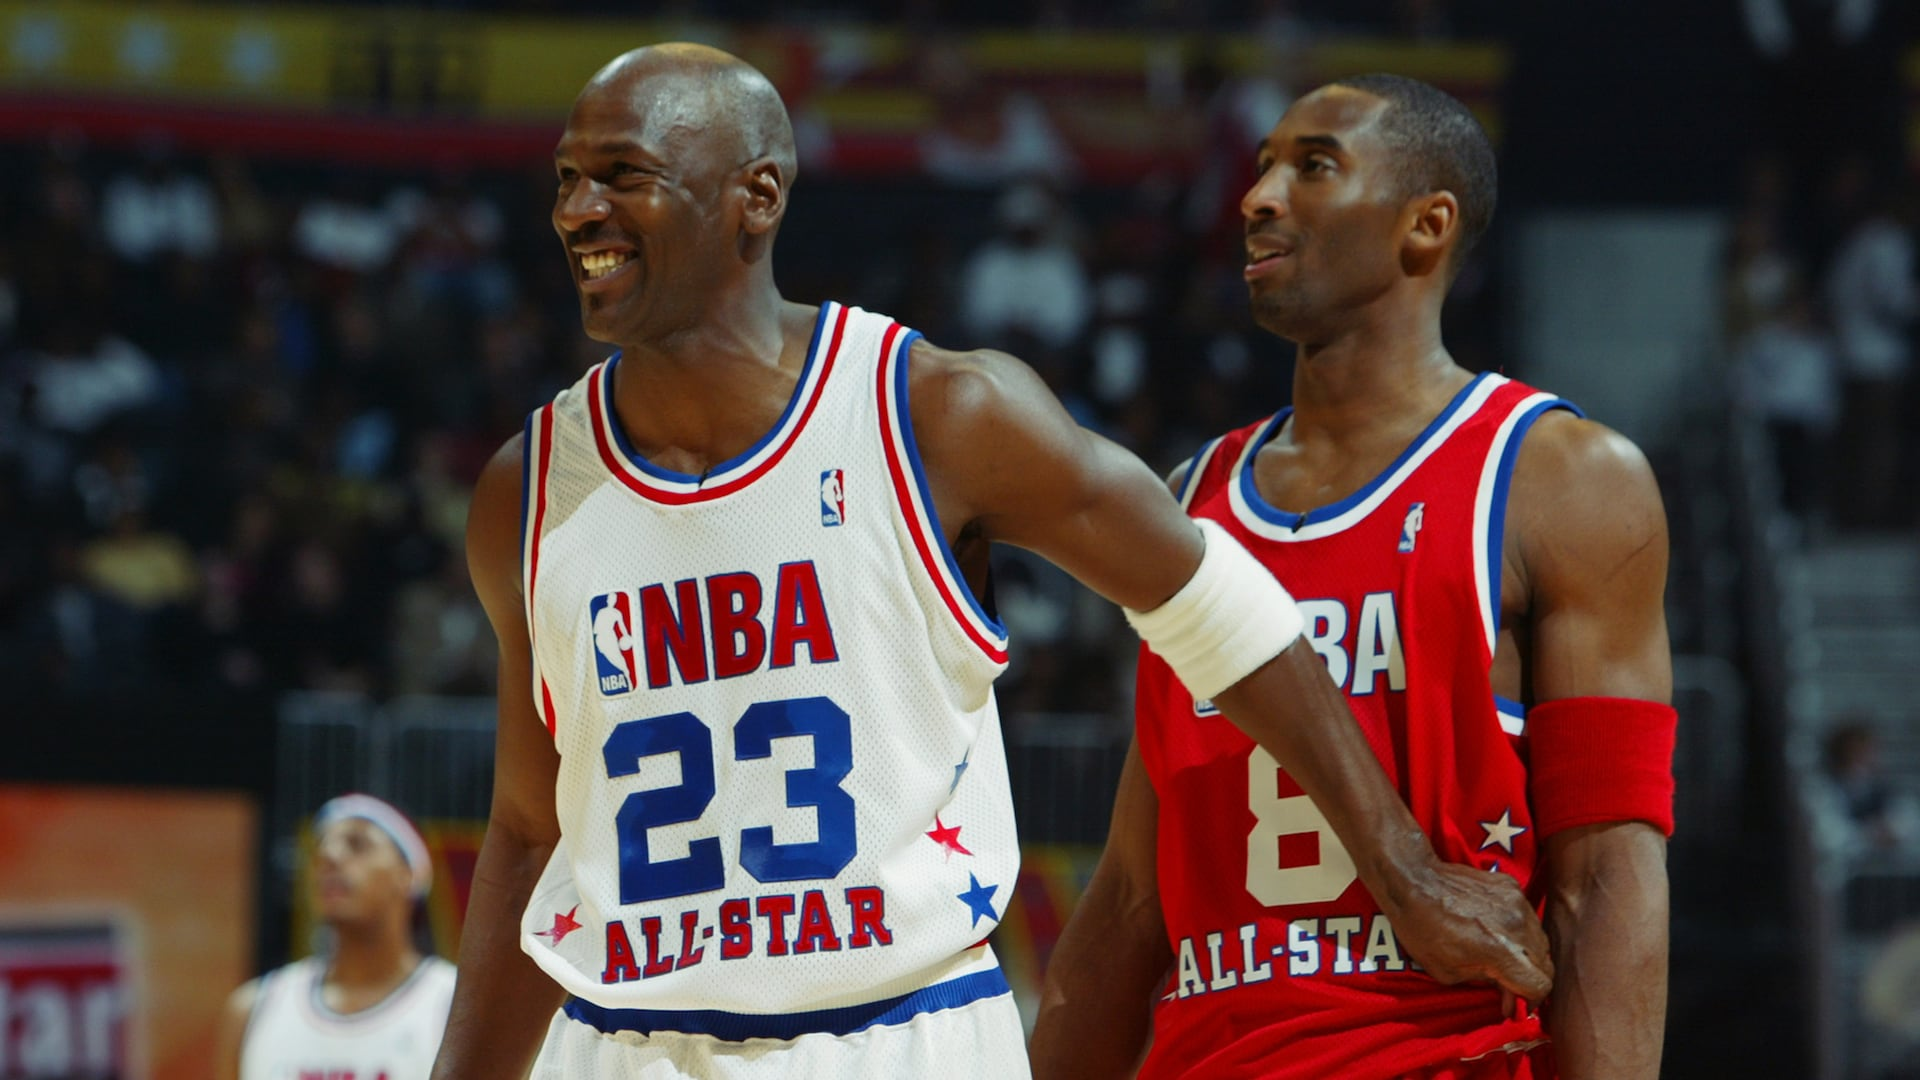 Despite staying with Lakers, Kobe Bryant was ready to follow Michael Jordan's footsteps in Chicago